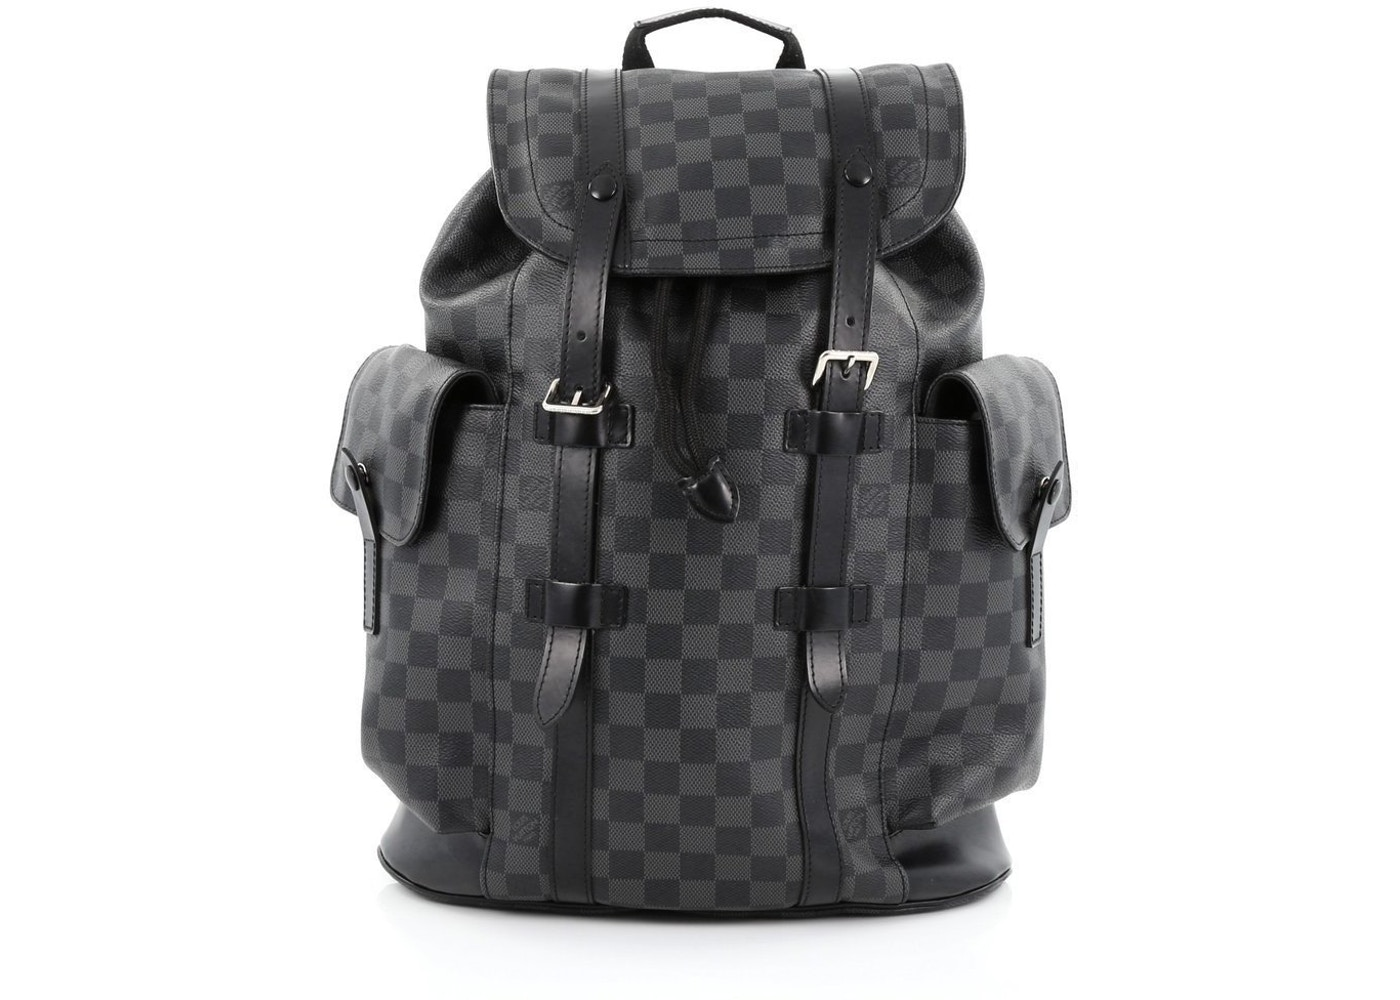 479aabca6b4 Louis Vuitton Christopher Damier Graphite PM Black